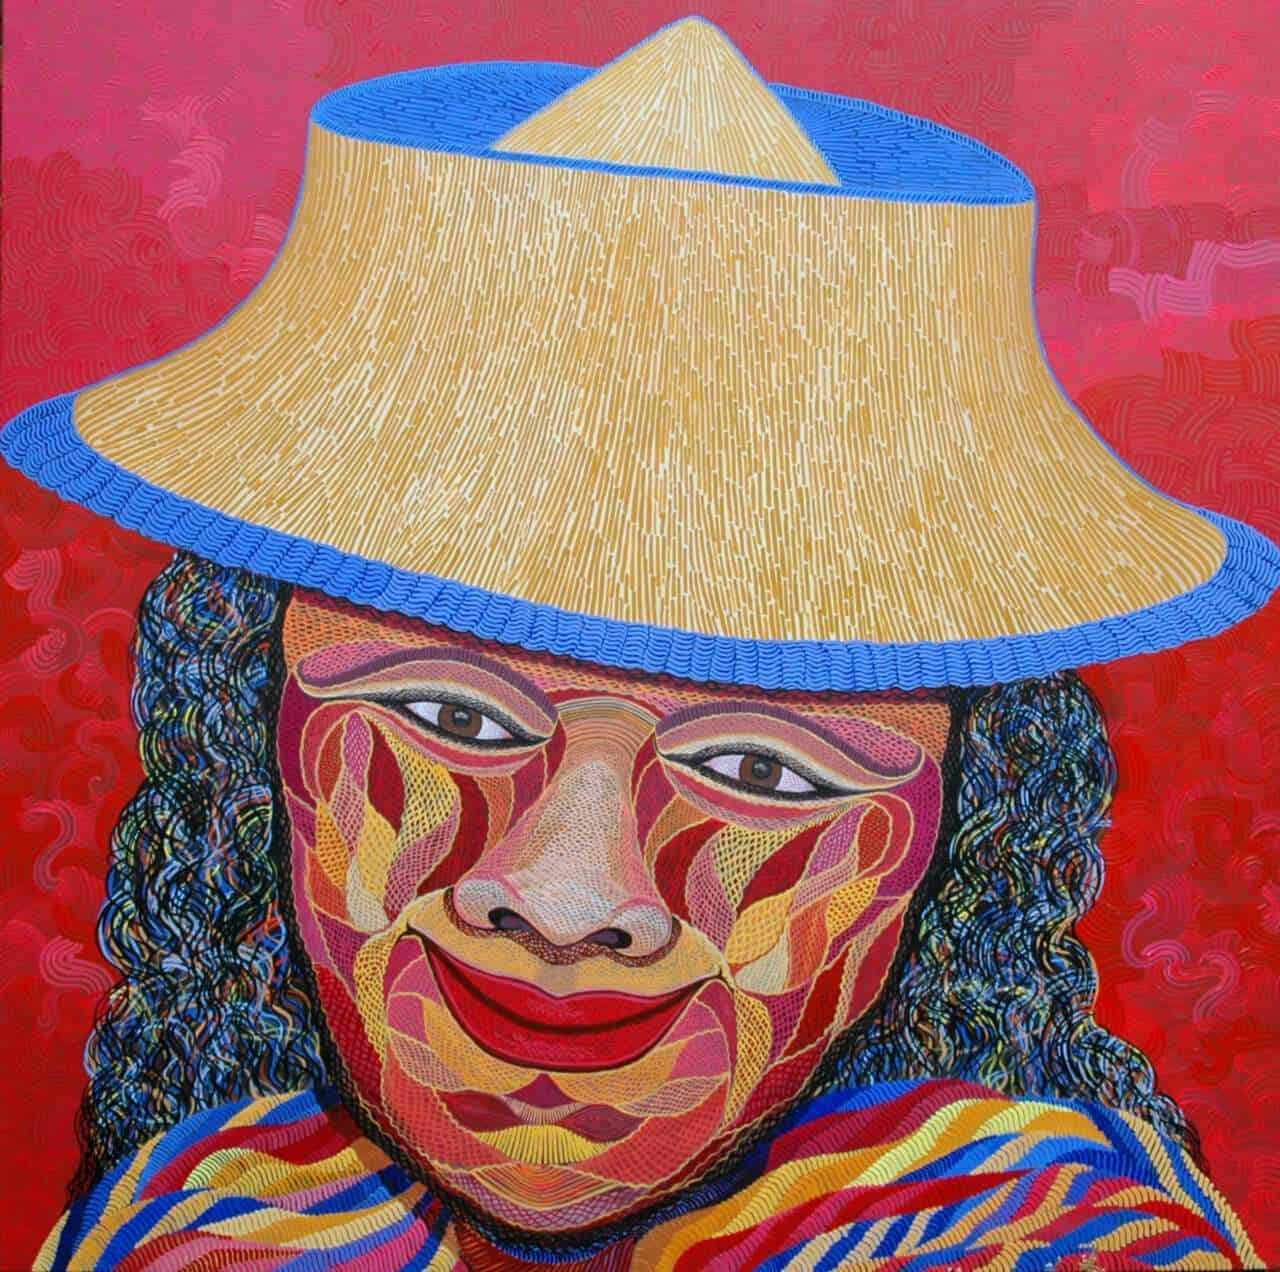 2014-10_self-portrait-with-hat_200x200cm_Acrylic-on-canvas